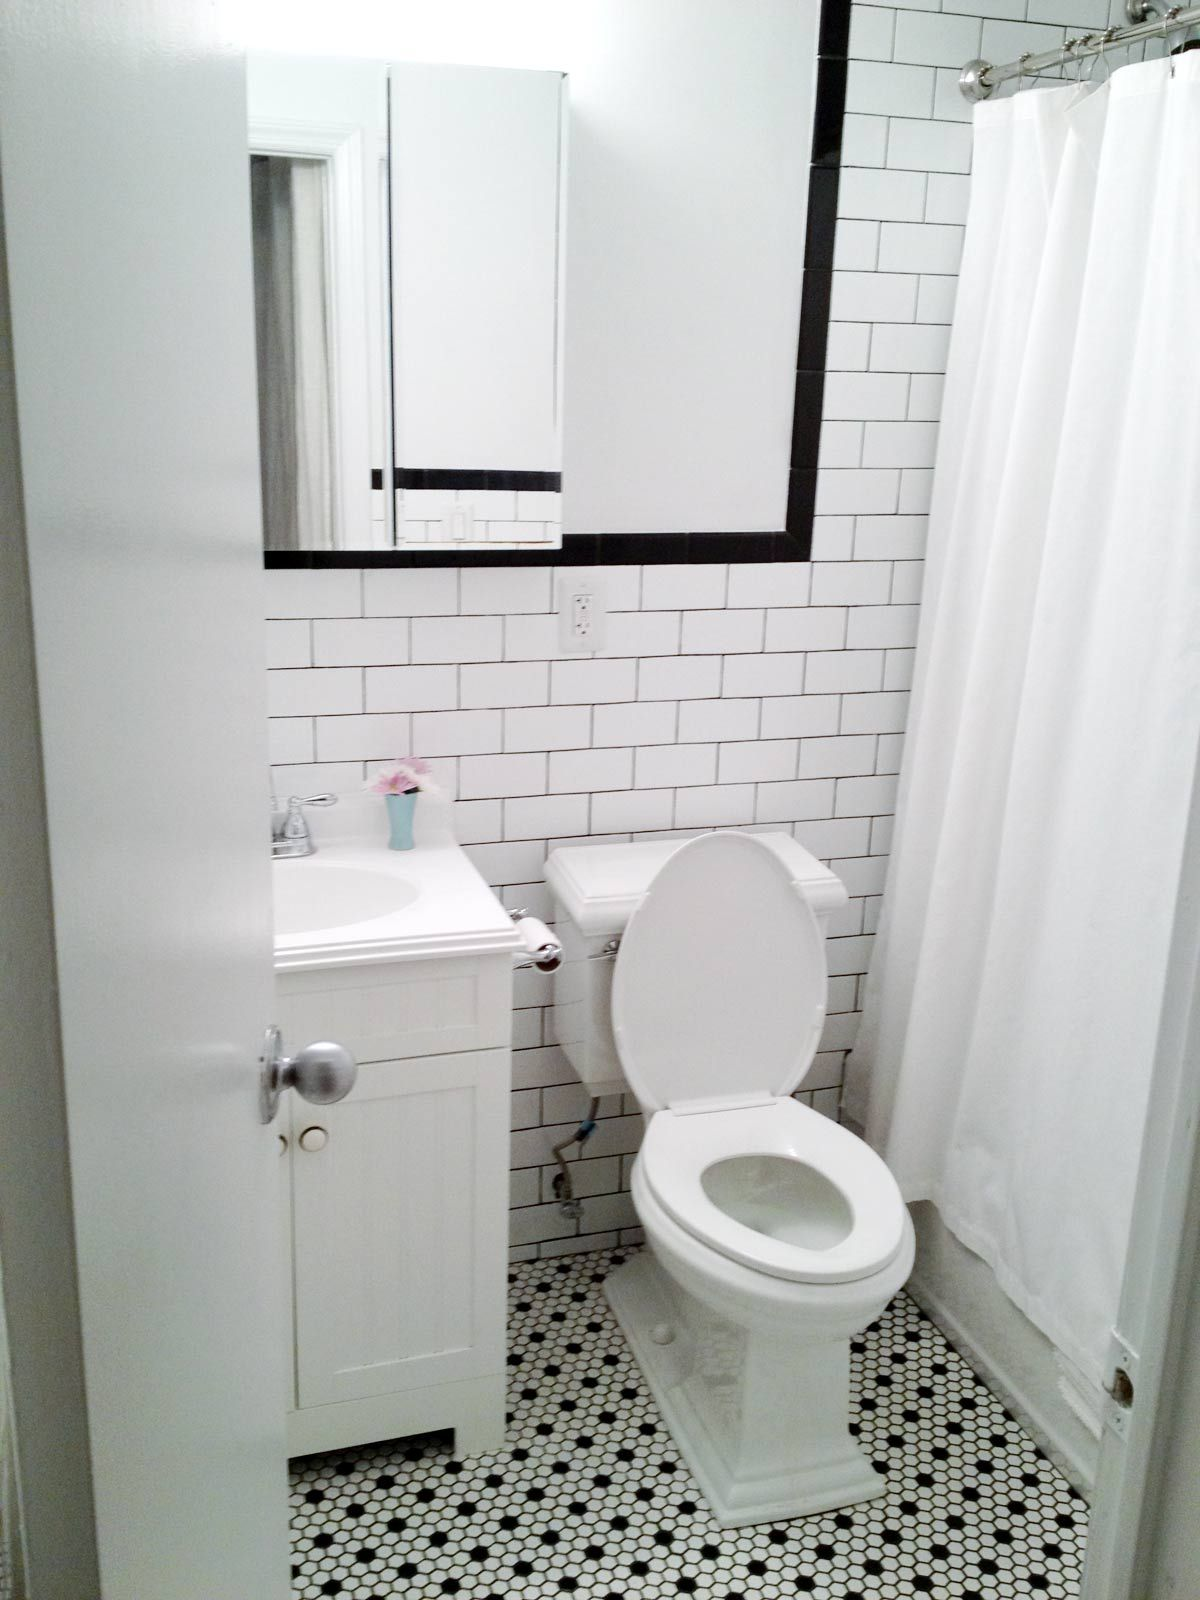 Black and white bathroom wall tiles - Bathroom Nice Combination Of Small Subway Tile Checkered Black And White Floor Tile Like The Black Border Tiles Like Tile Half Way Up Wall Or All The